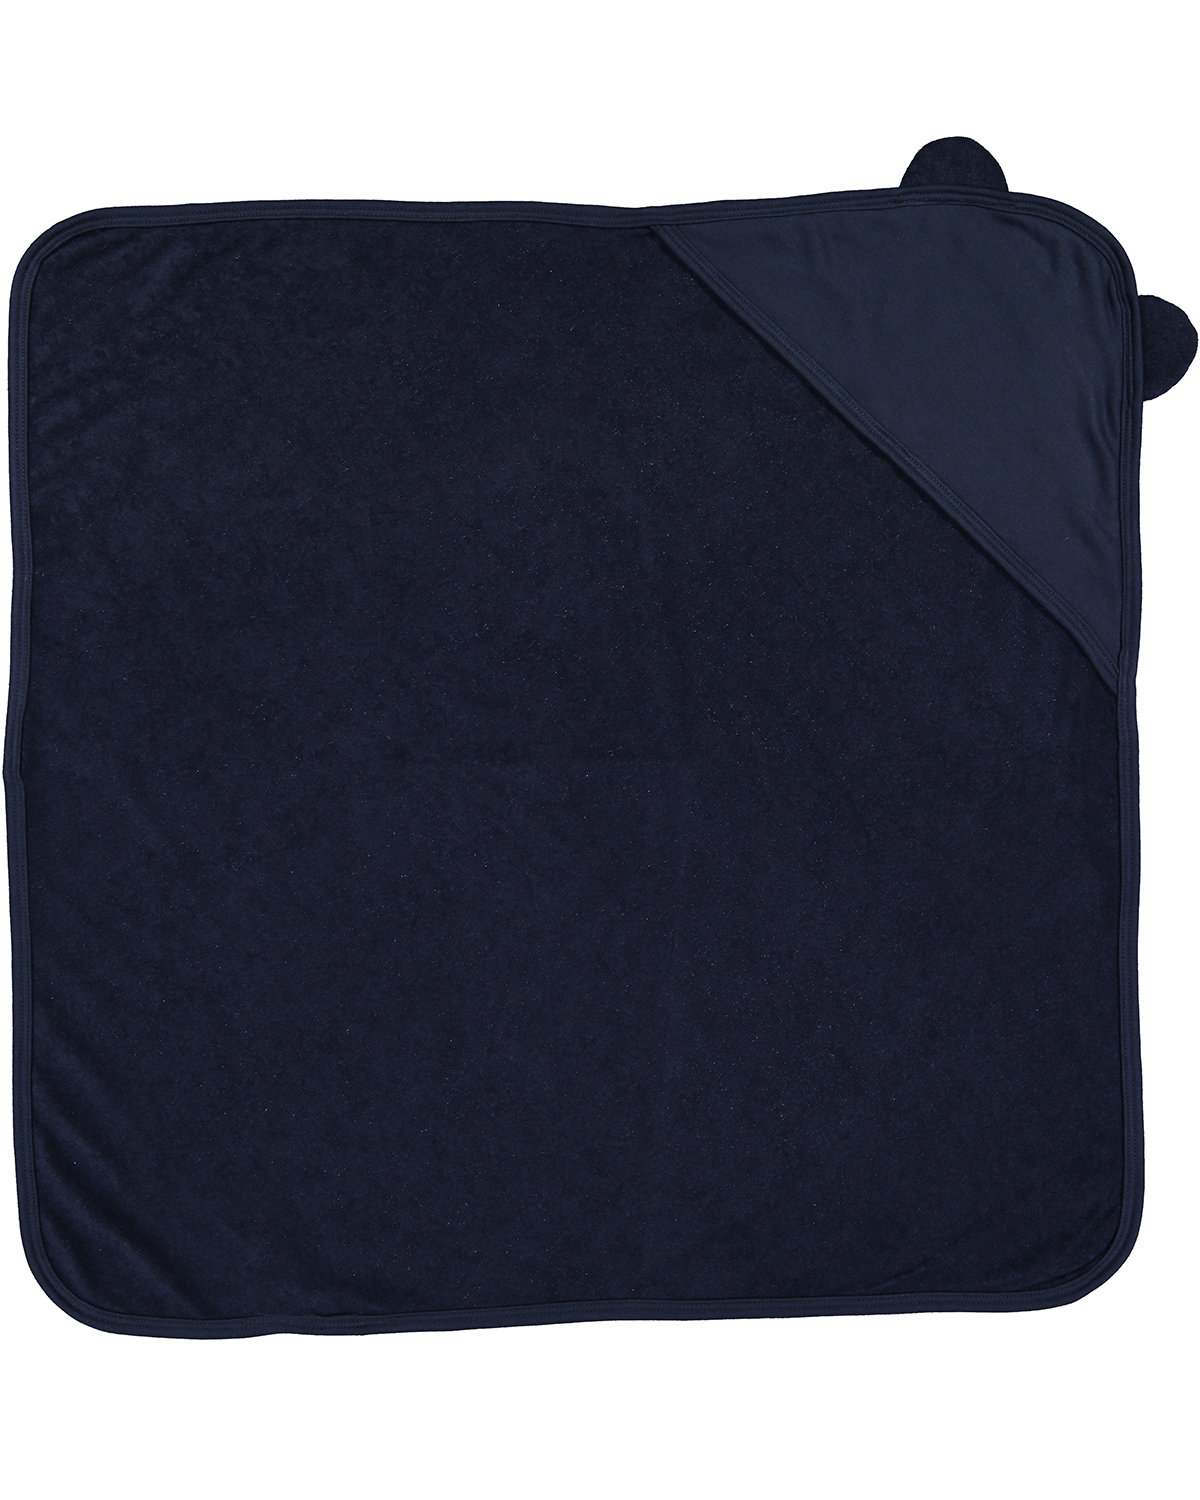 Rabbit Skins Infant Hooded Terry Cloth Towel With Ears NAVY